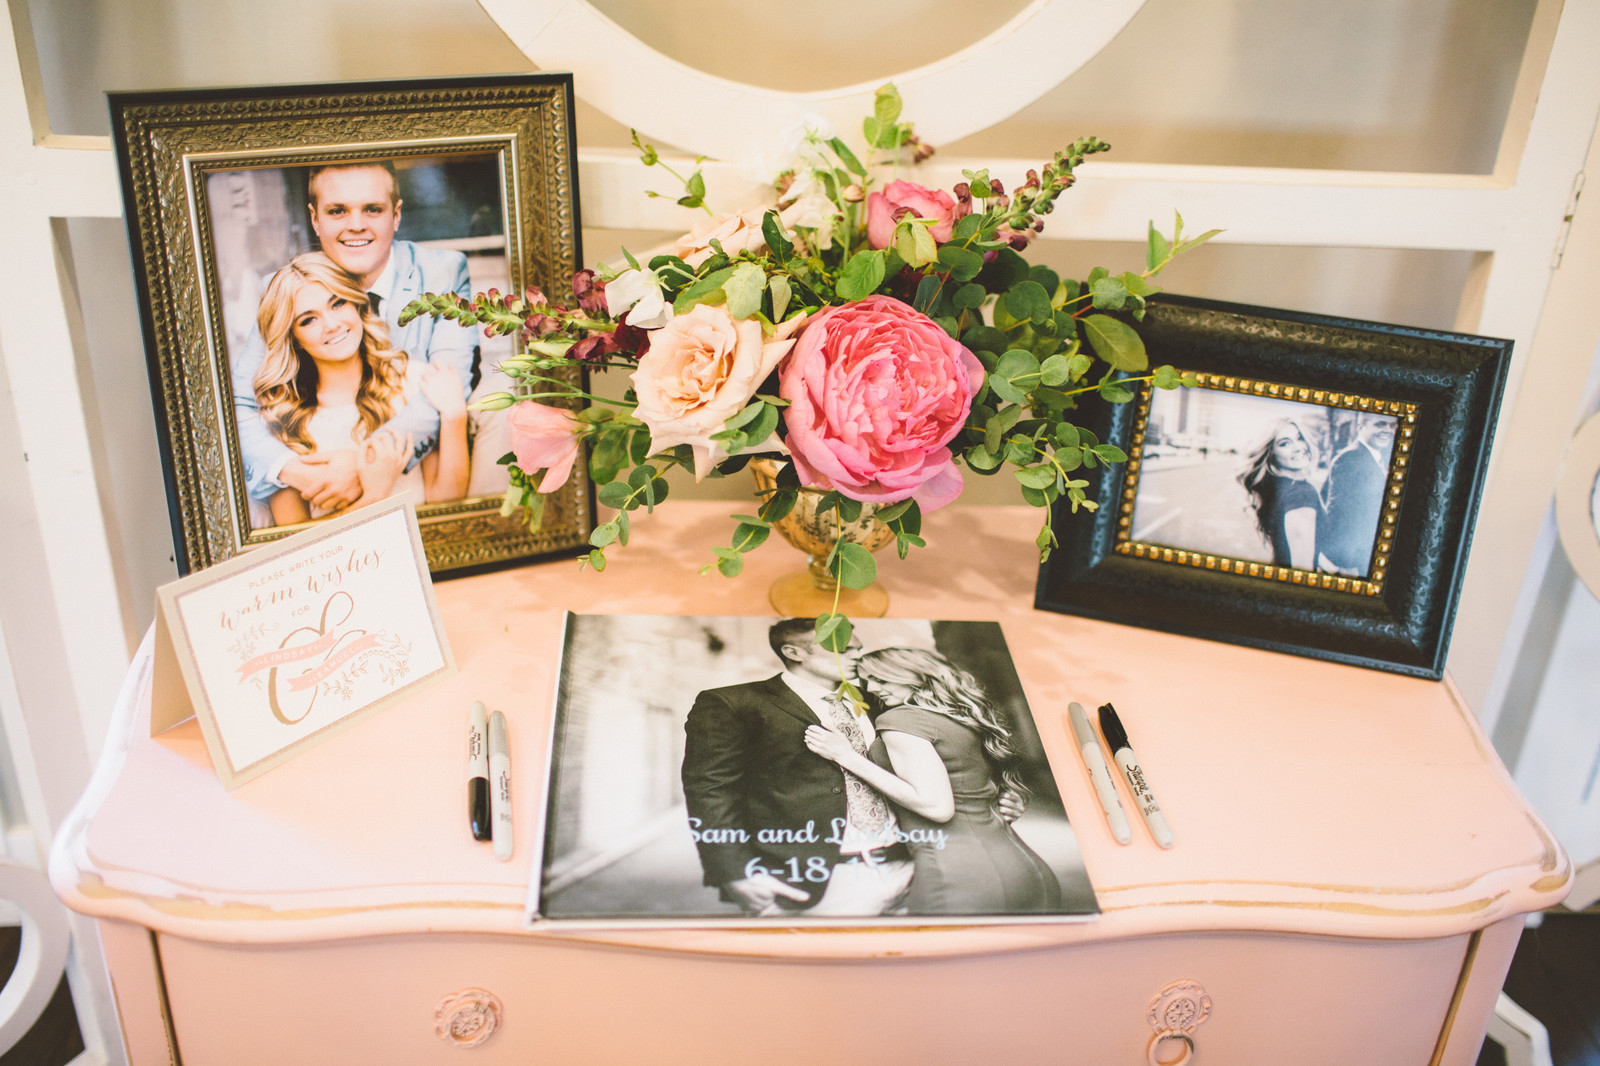 Lindsay Arnold Wedding.Lindsay Arnold Wedding Guest Book Sign